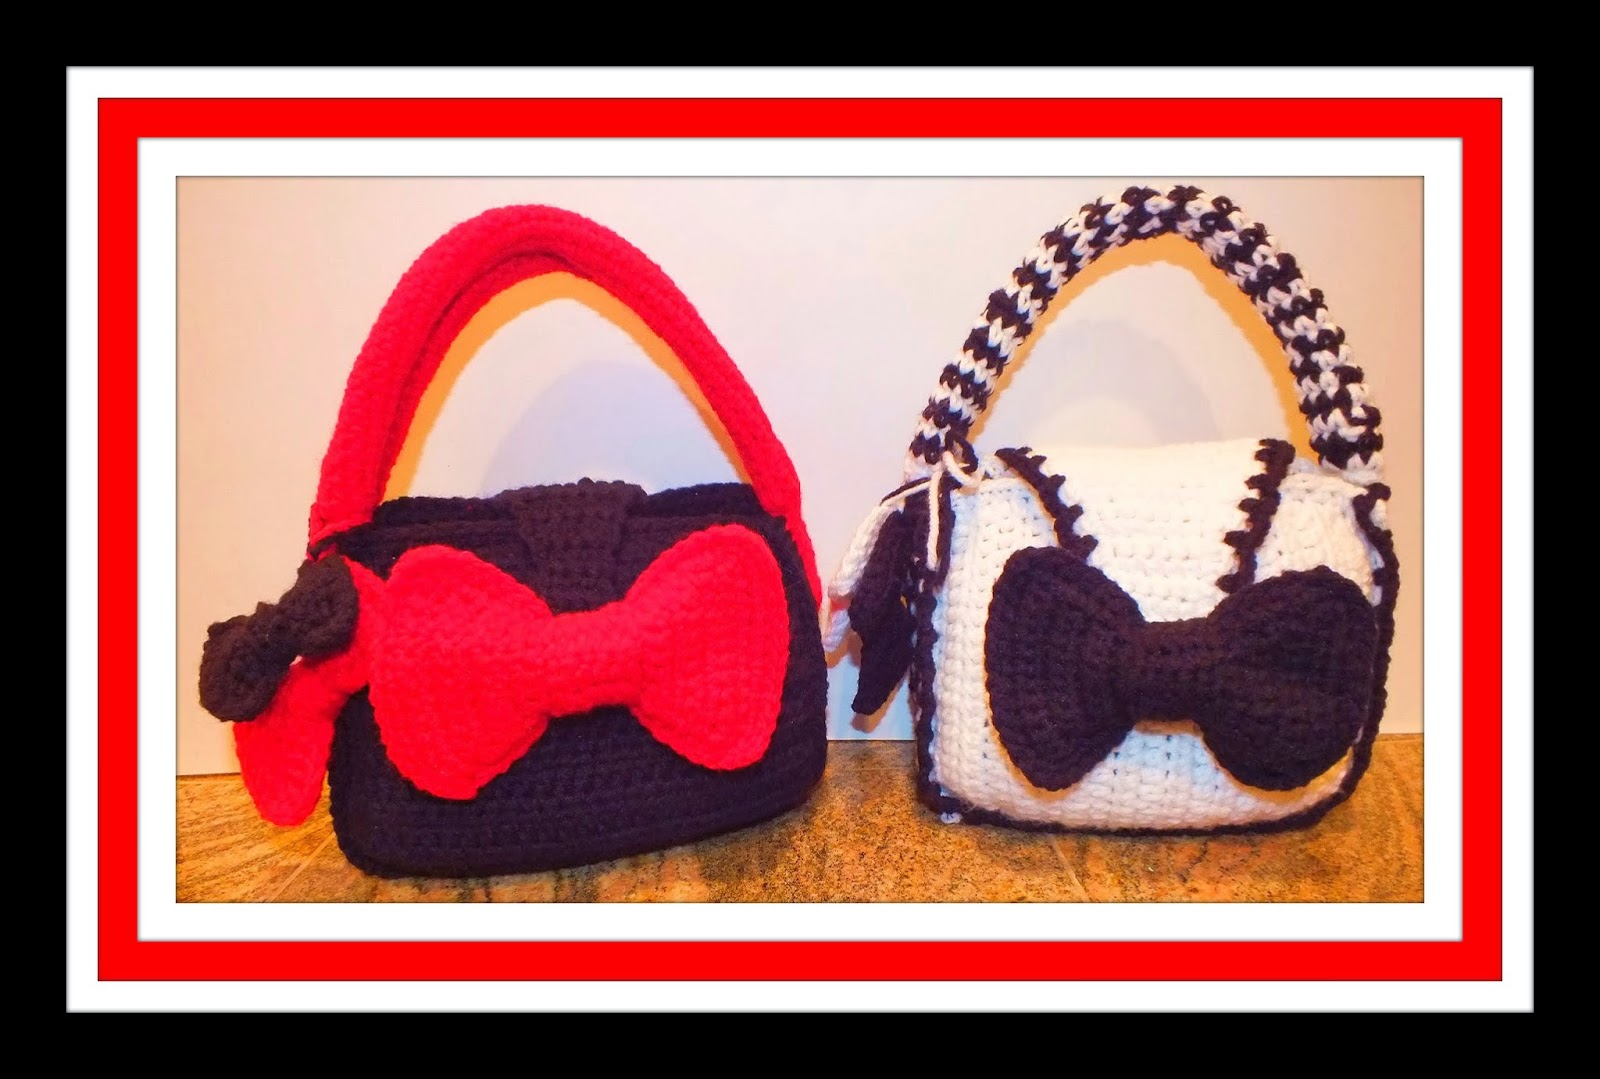 Handbag Baby Bow Satchel Purse Pattern© By Connie Hughes Designs©